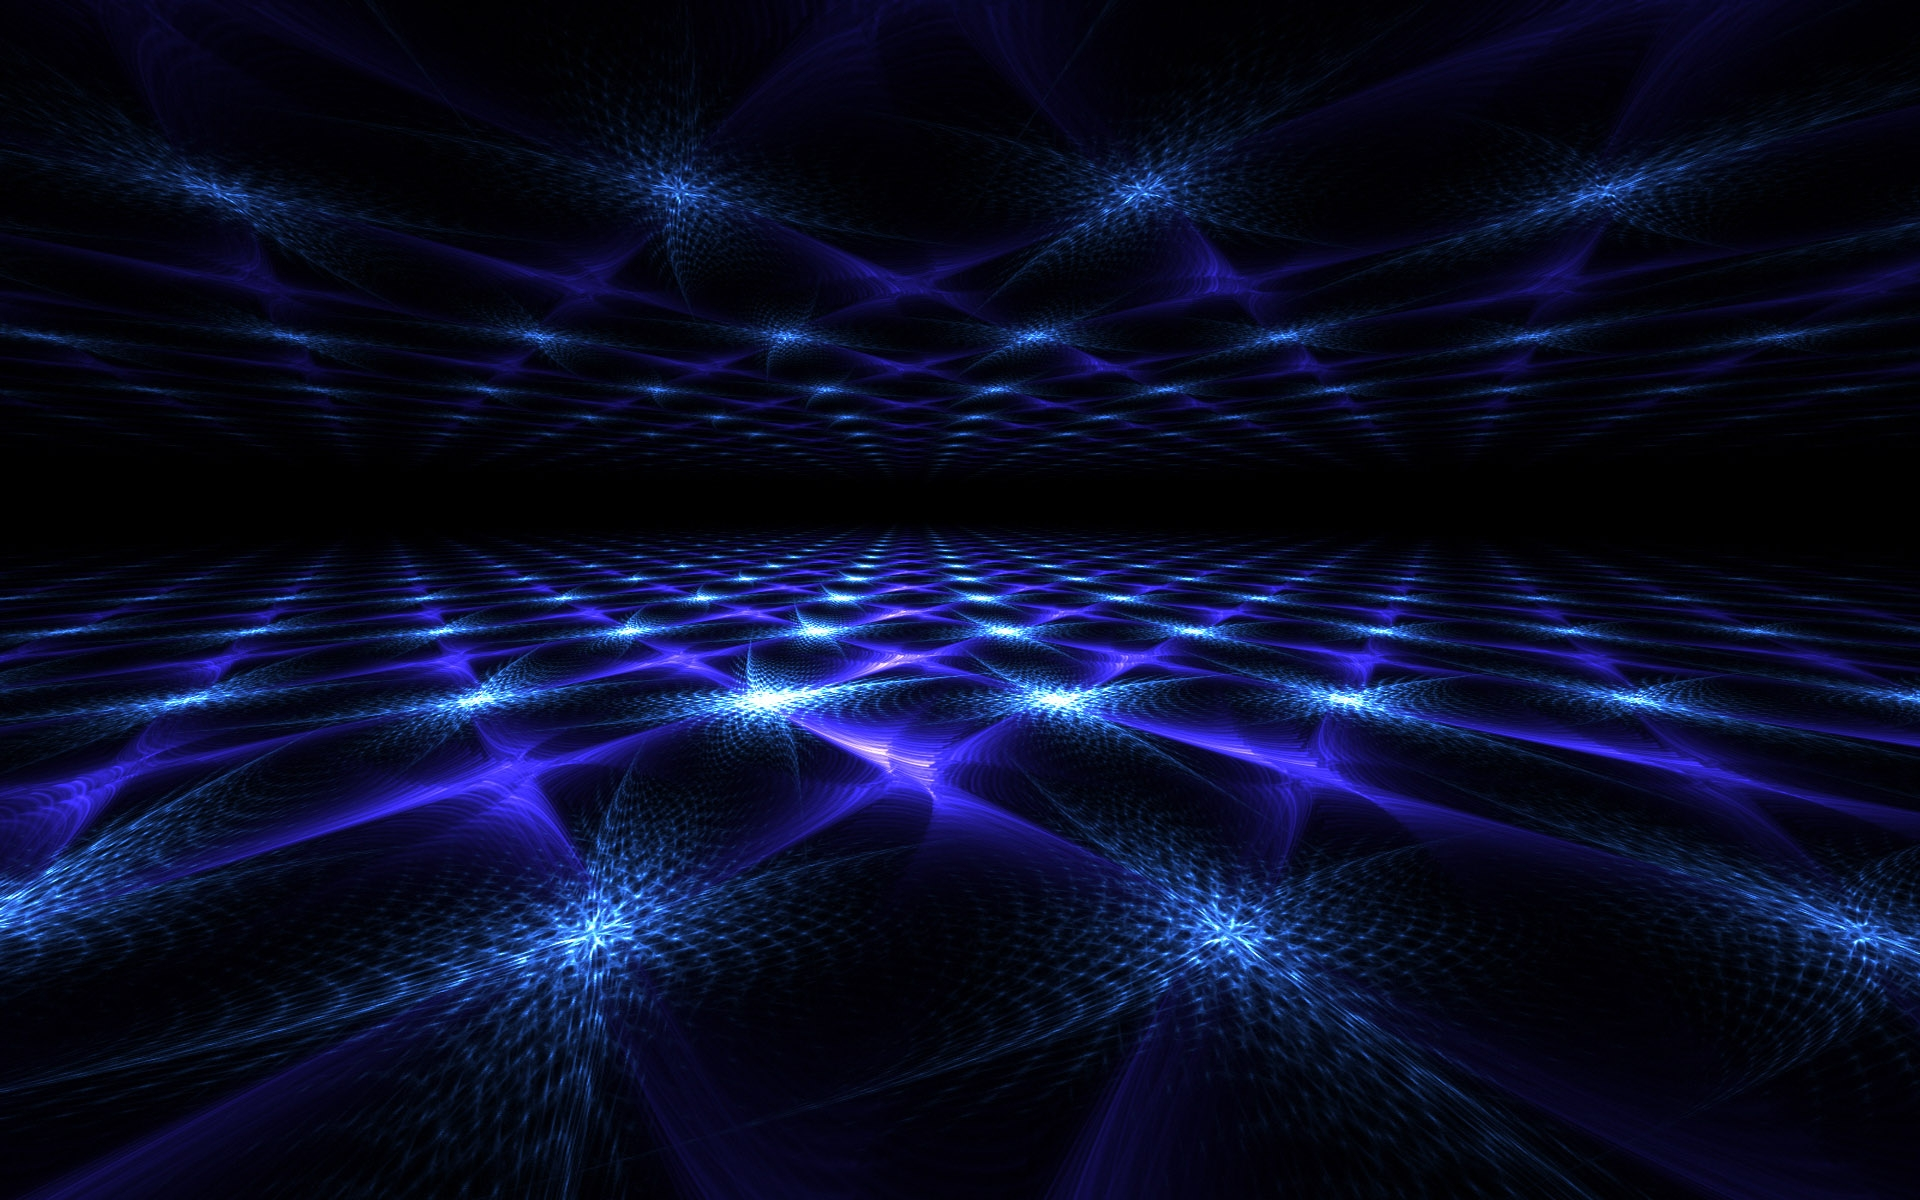 Disco wallpaper 236069 1920x1200